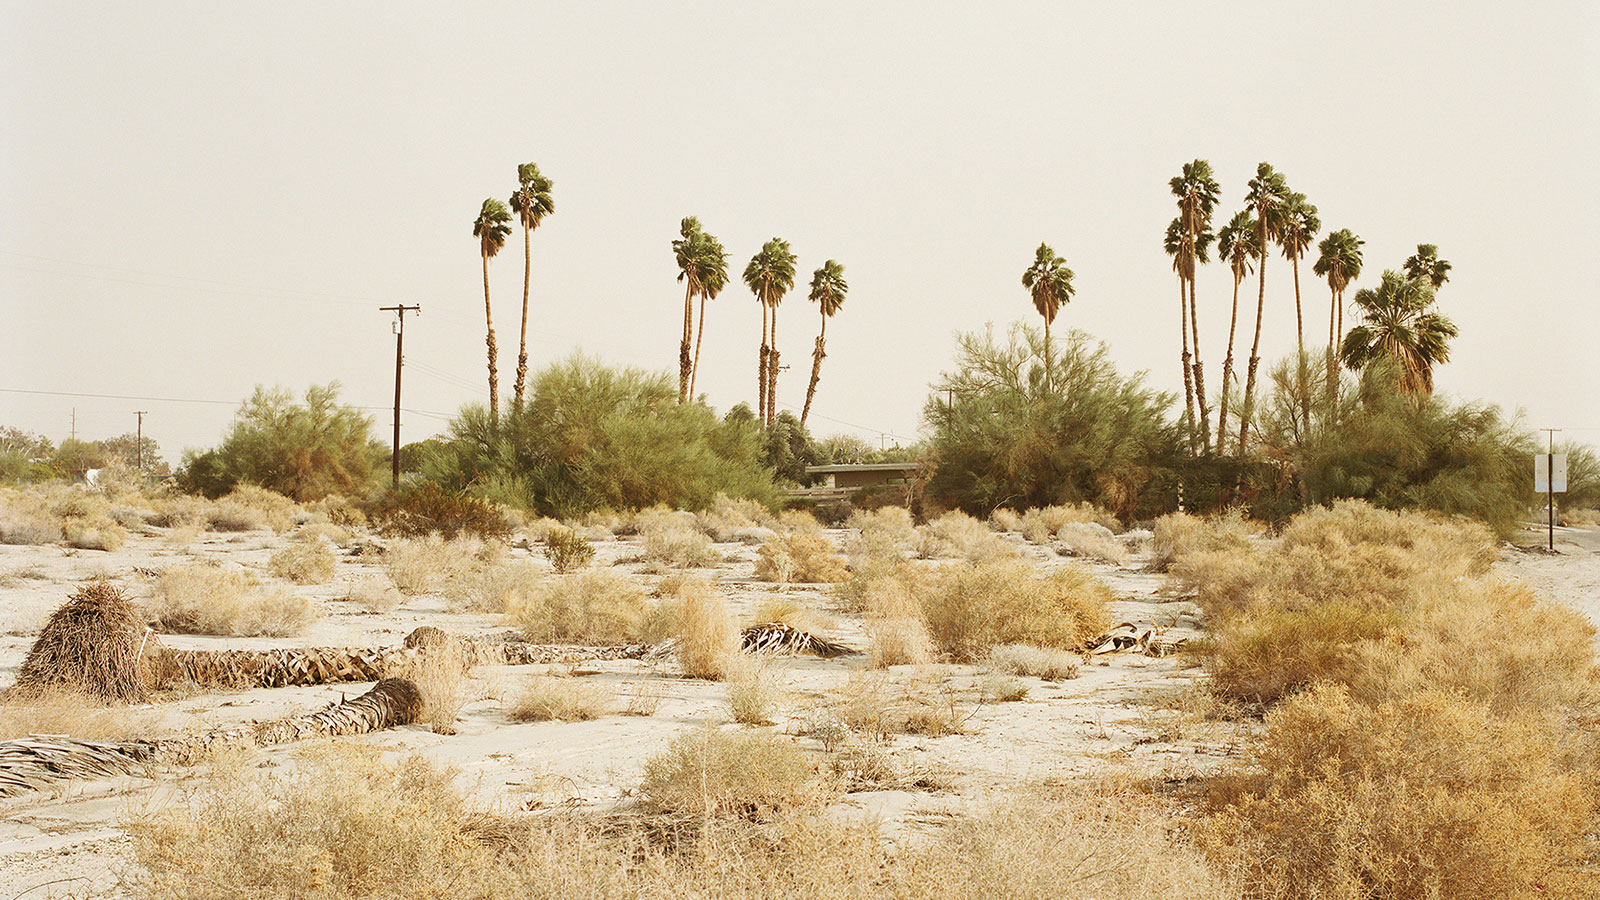 Detail Of: © Ron Jude, Dust Storm W/Palms And House, 2013, From The Series 'Lago'